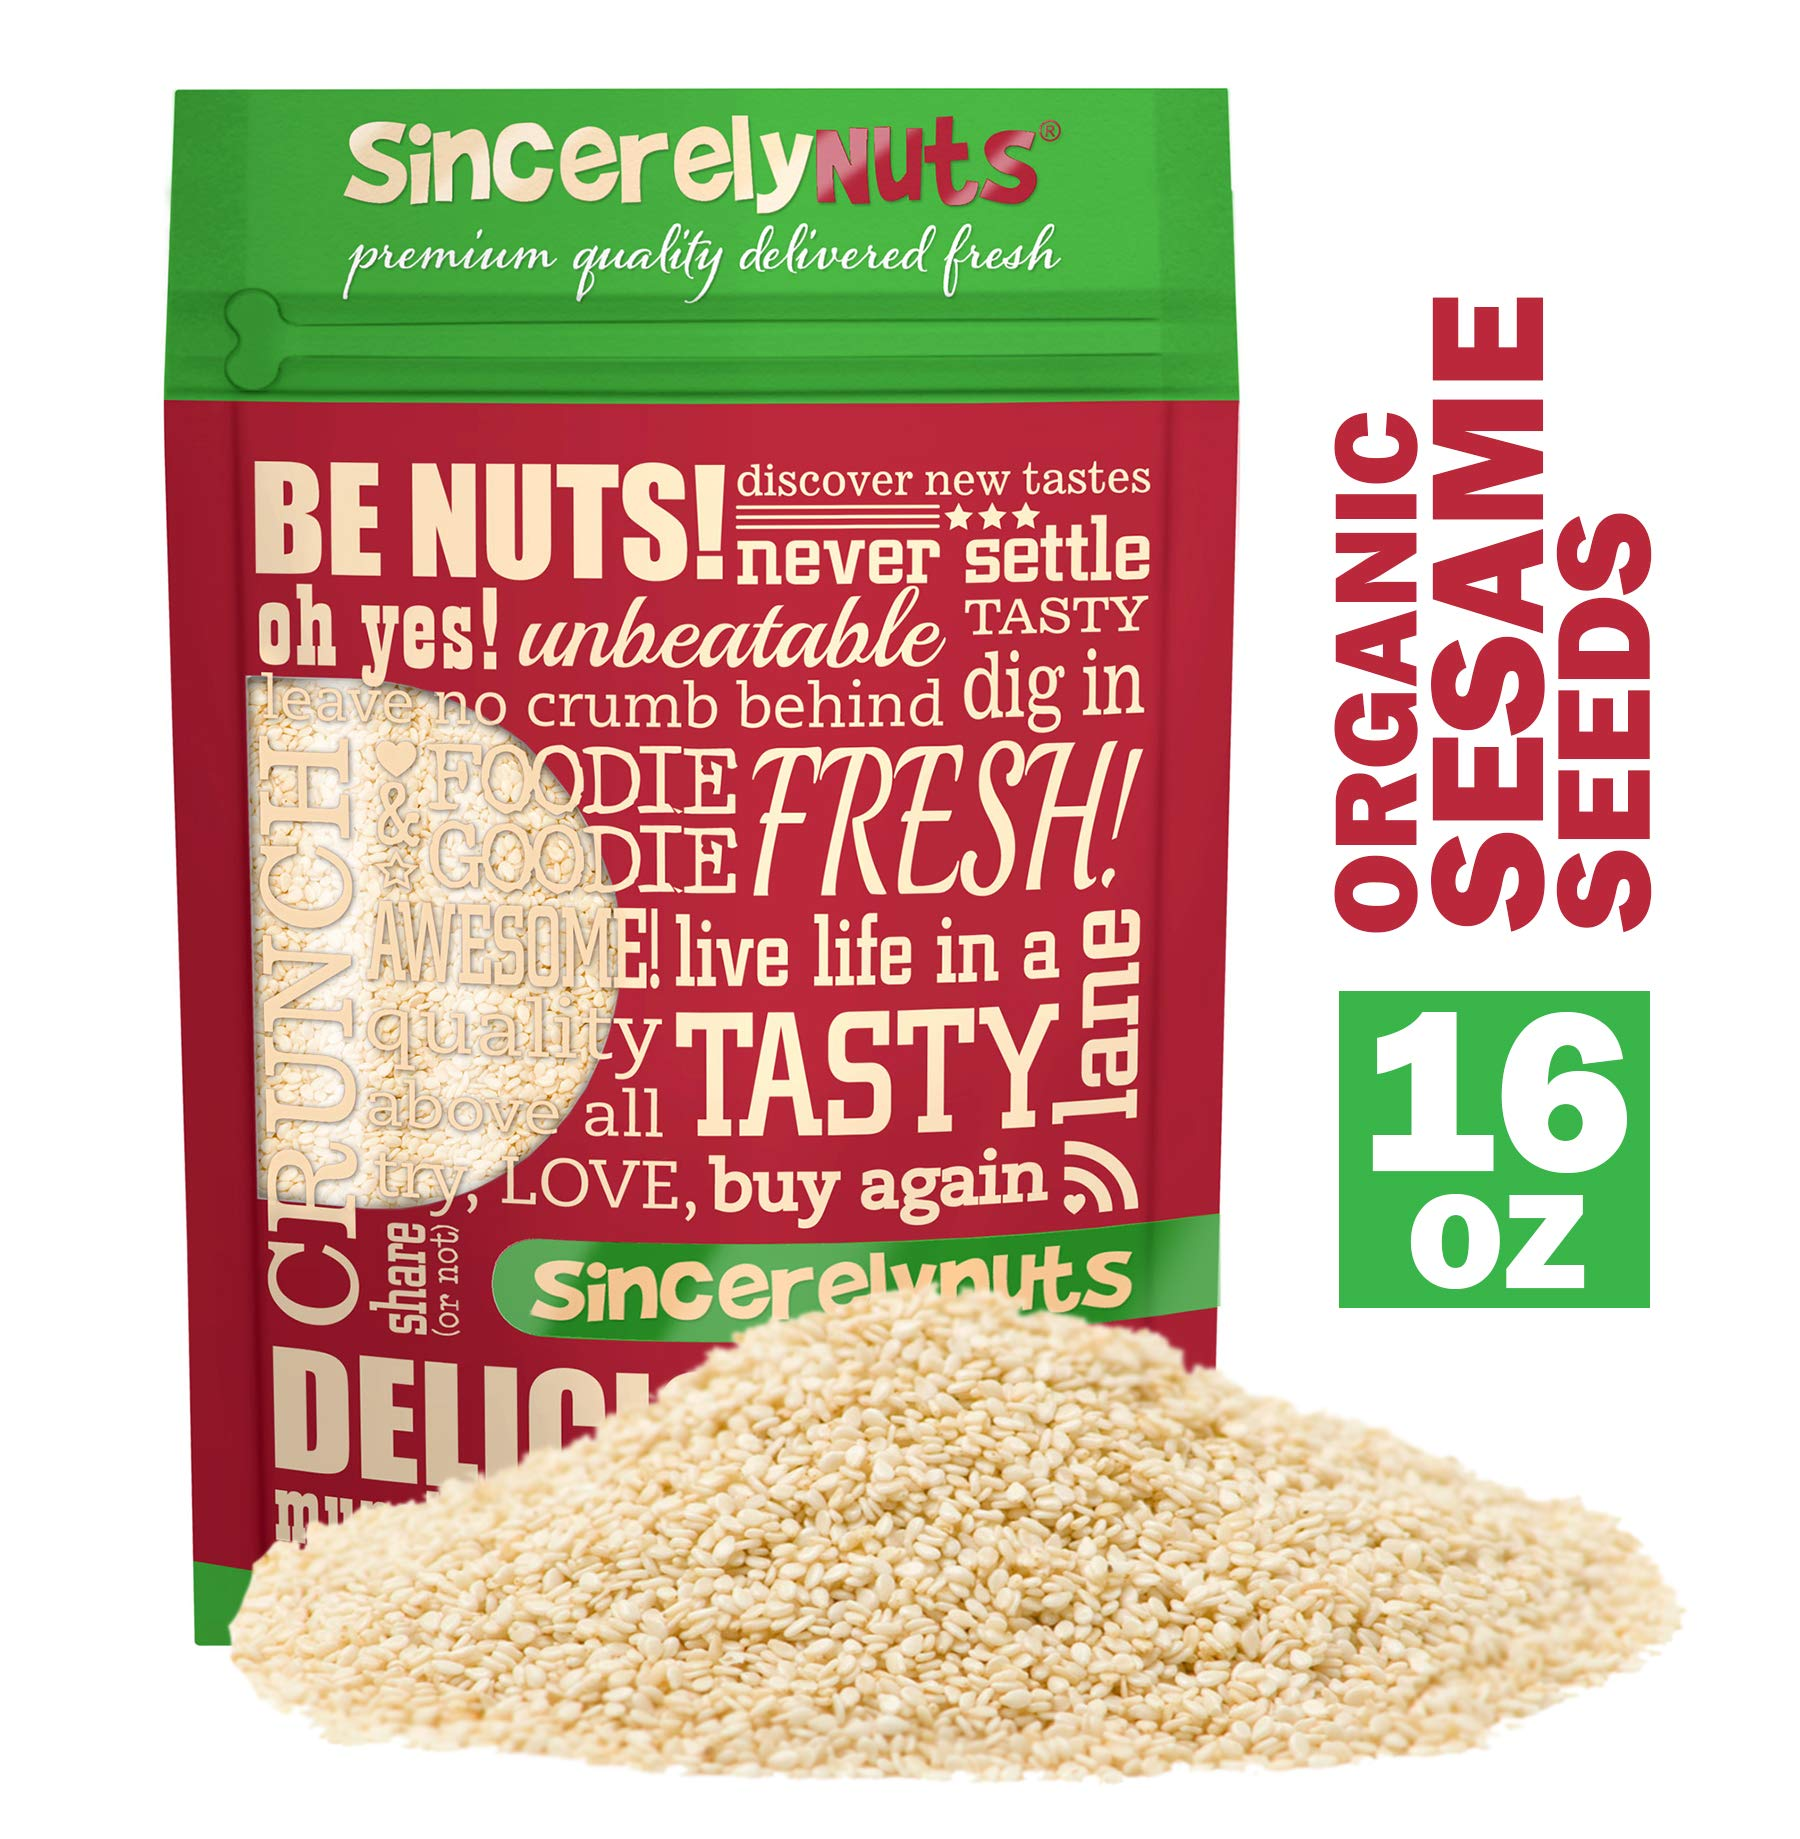 Sincerely Nuts Hulled Organic Sesame Seeds (1 lb Bag)- Nature's Super Seed | Rich Flavor Profile Perfect for Cooking | Raw, Gluten Free, Vegan & Kosher | All Natural Plant Based Protein & Healthy Fats